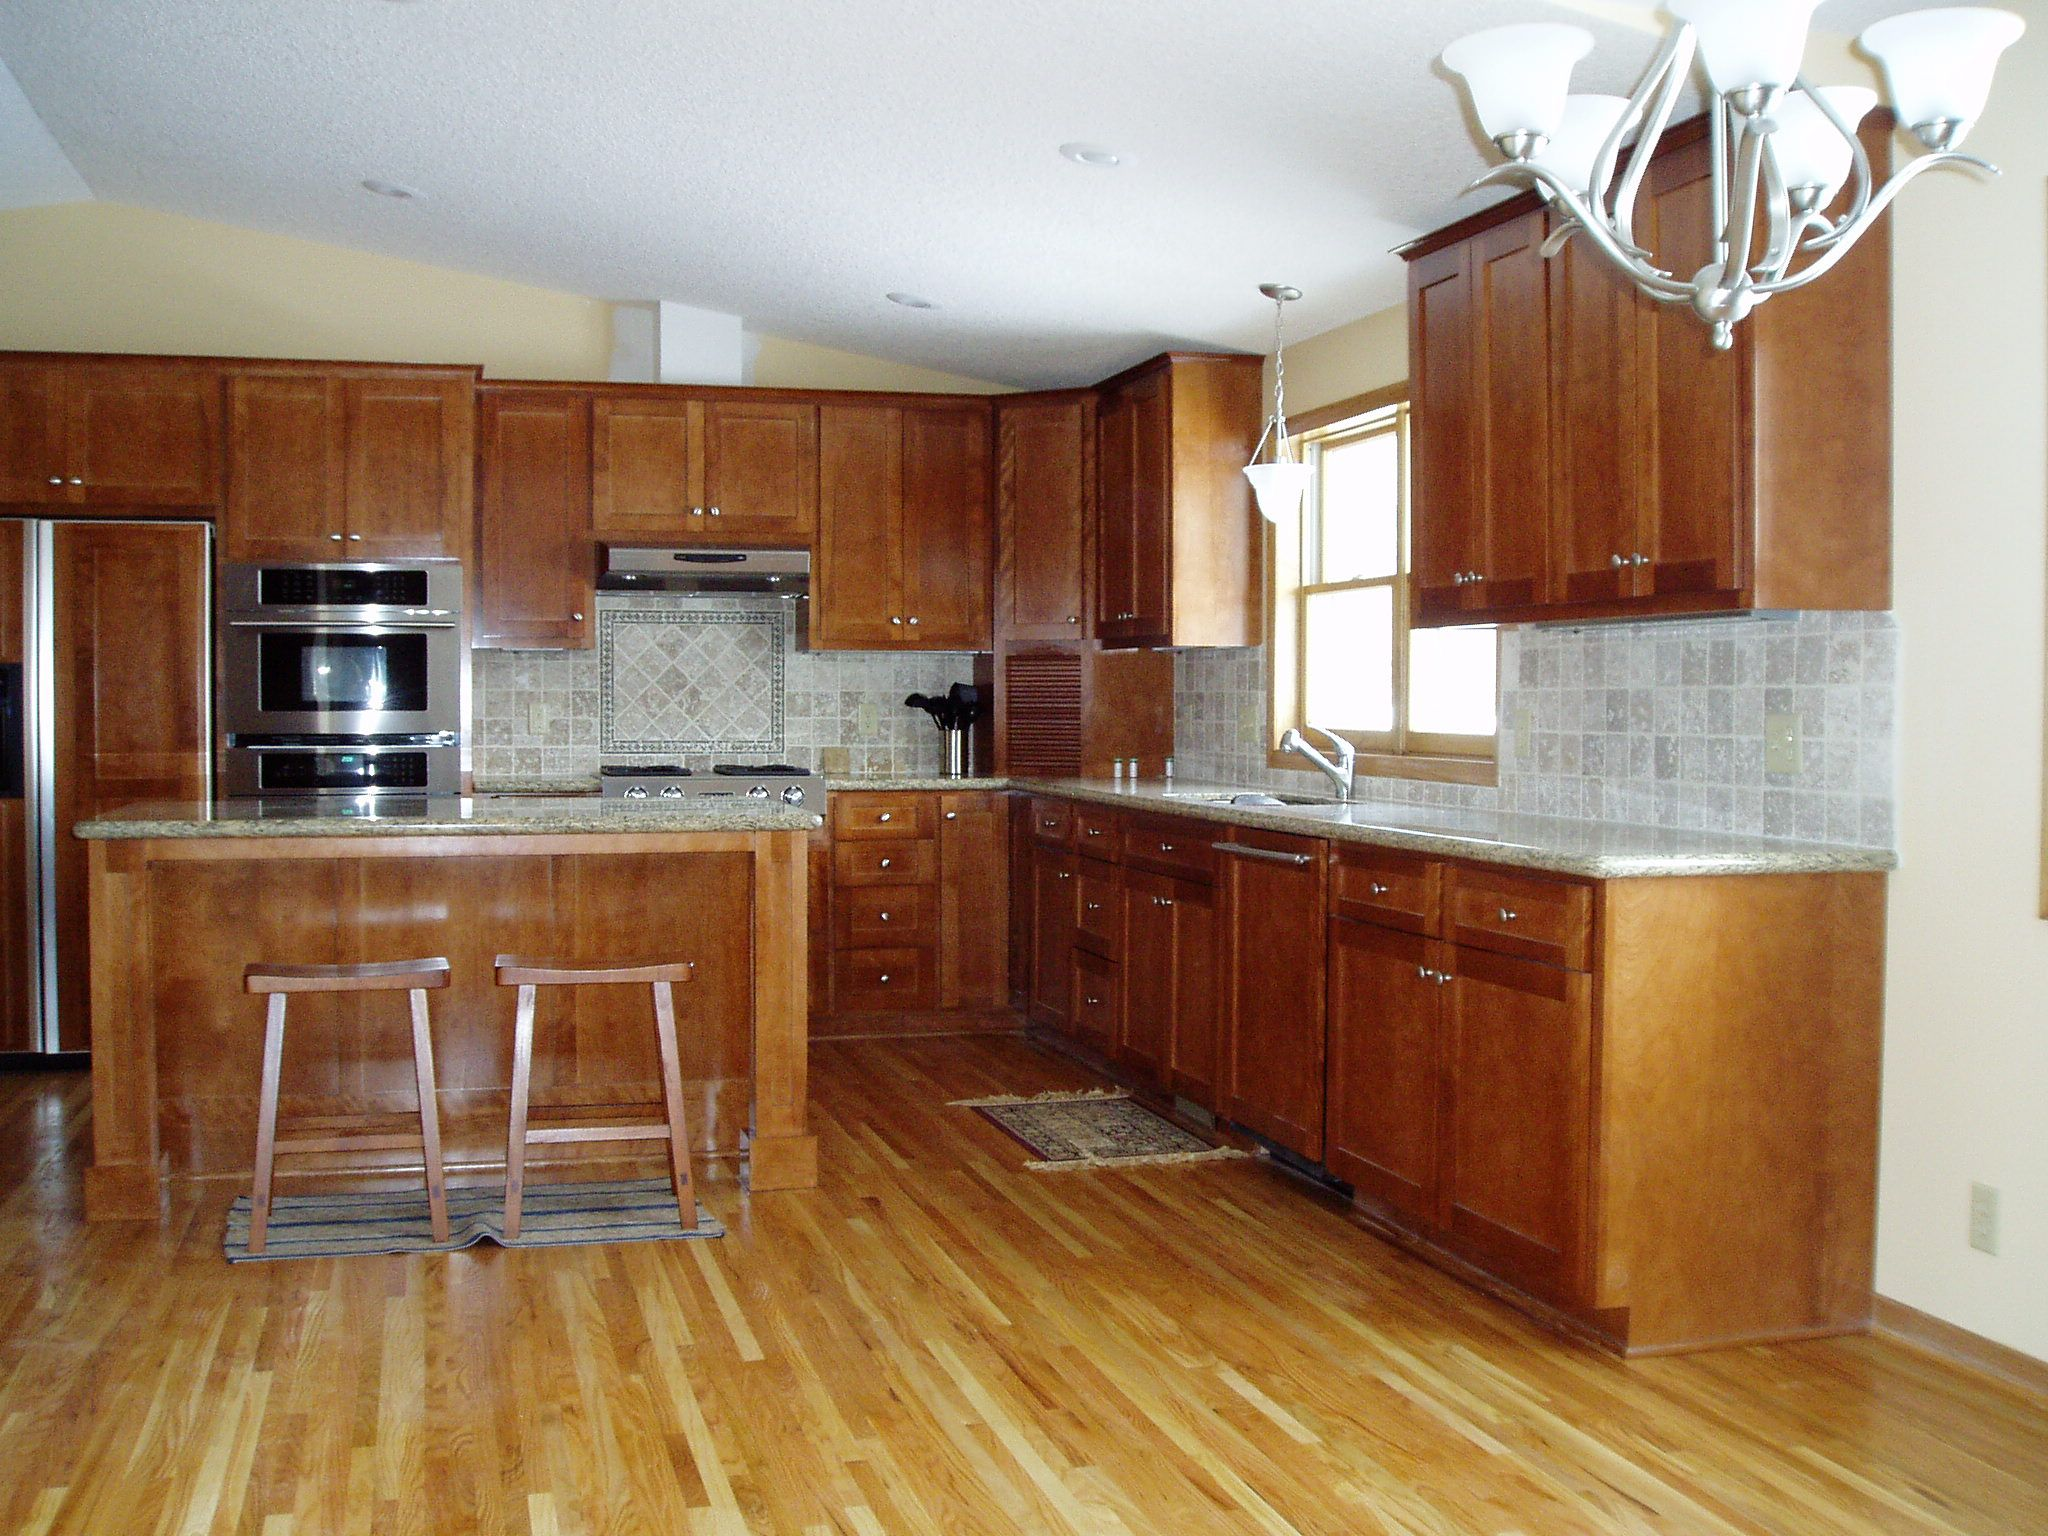 Kitchen Floor Cabinets Home Depot Sale Wood Flooring That Goes Well With Honey Oak For